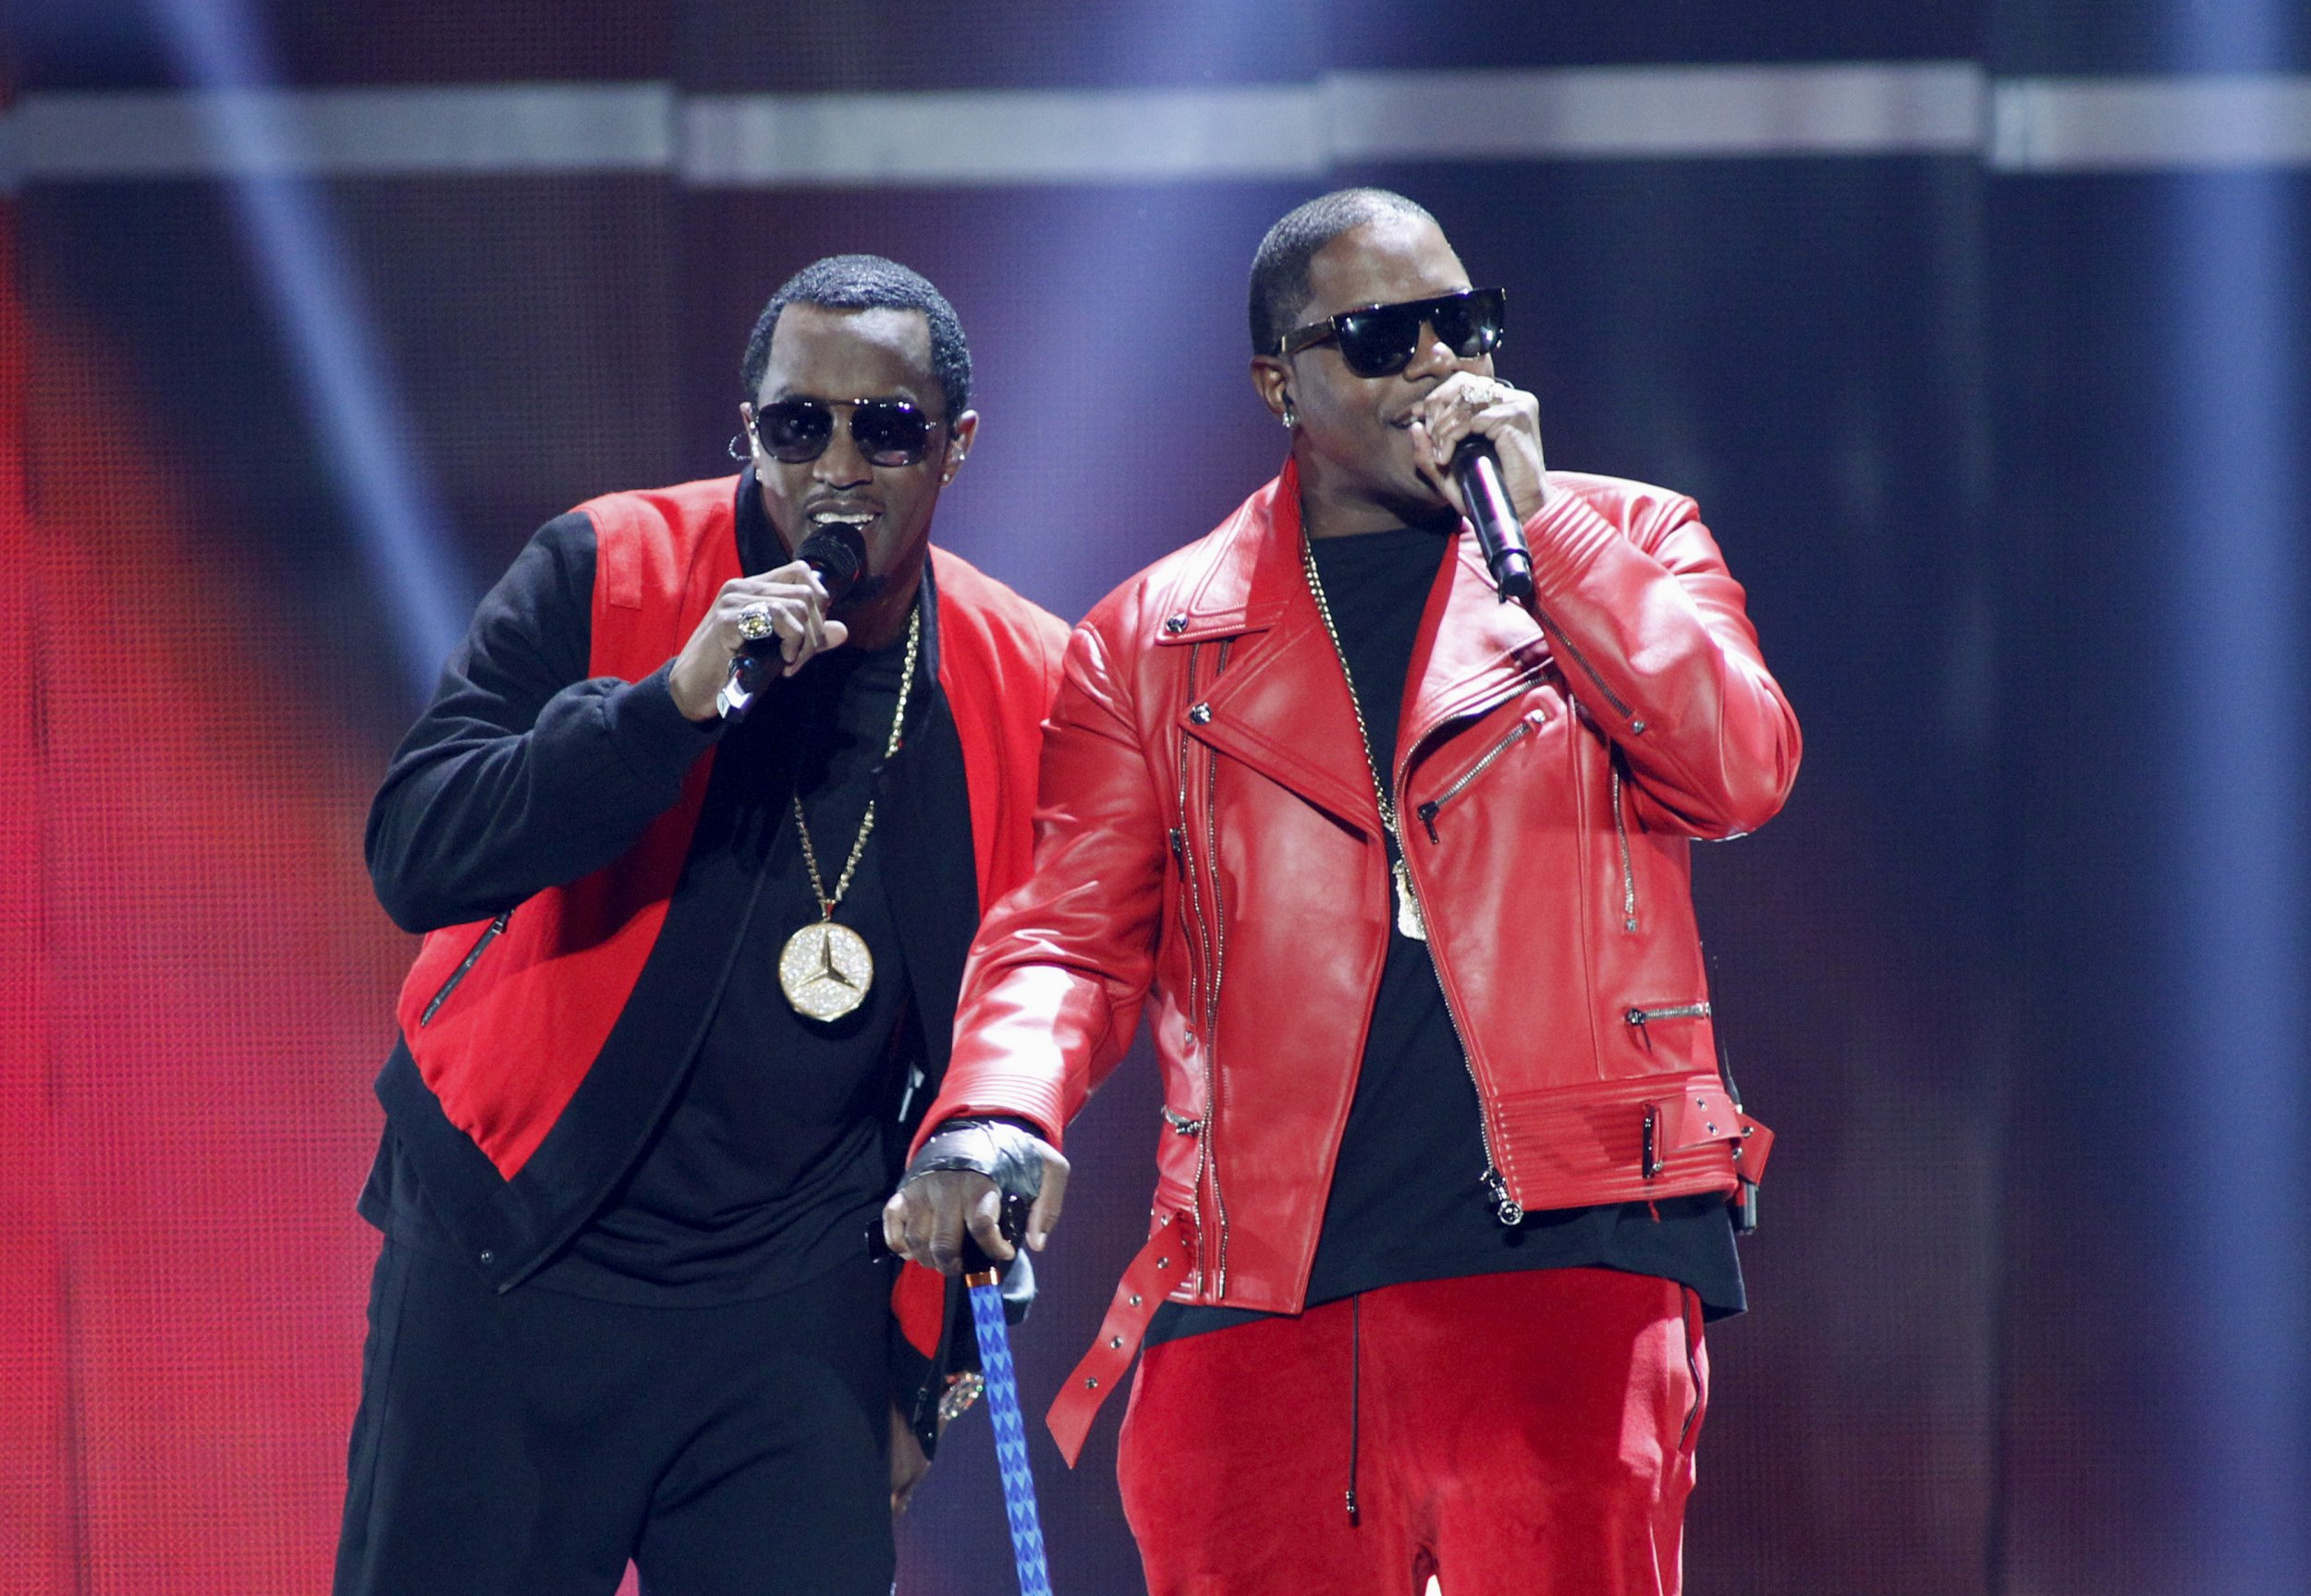 Puff Daddy Announces Bad Boy Reunion Concert To Celebrate